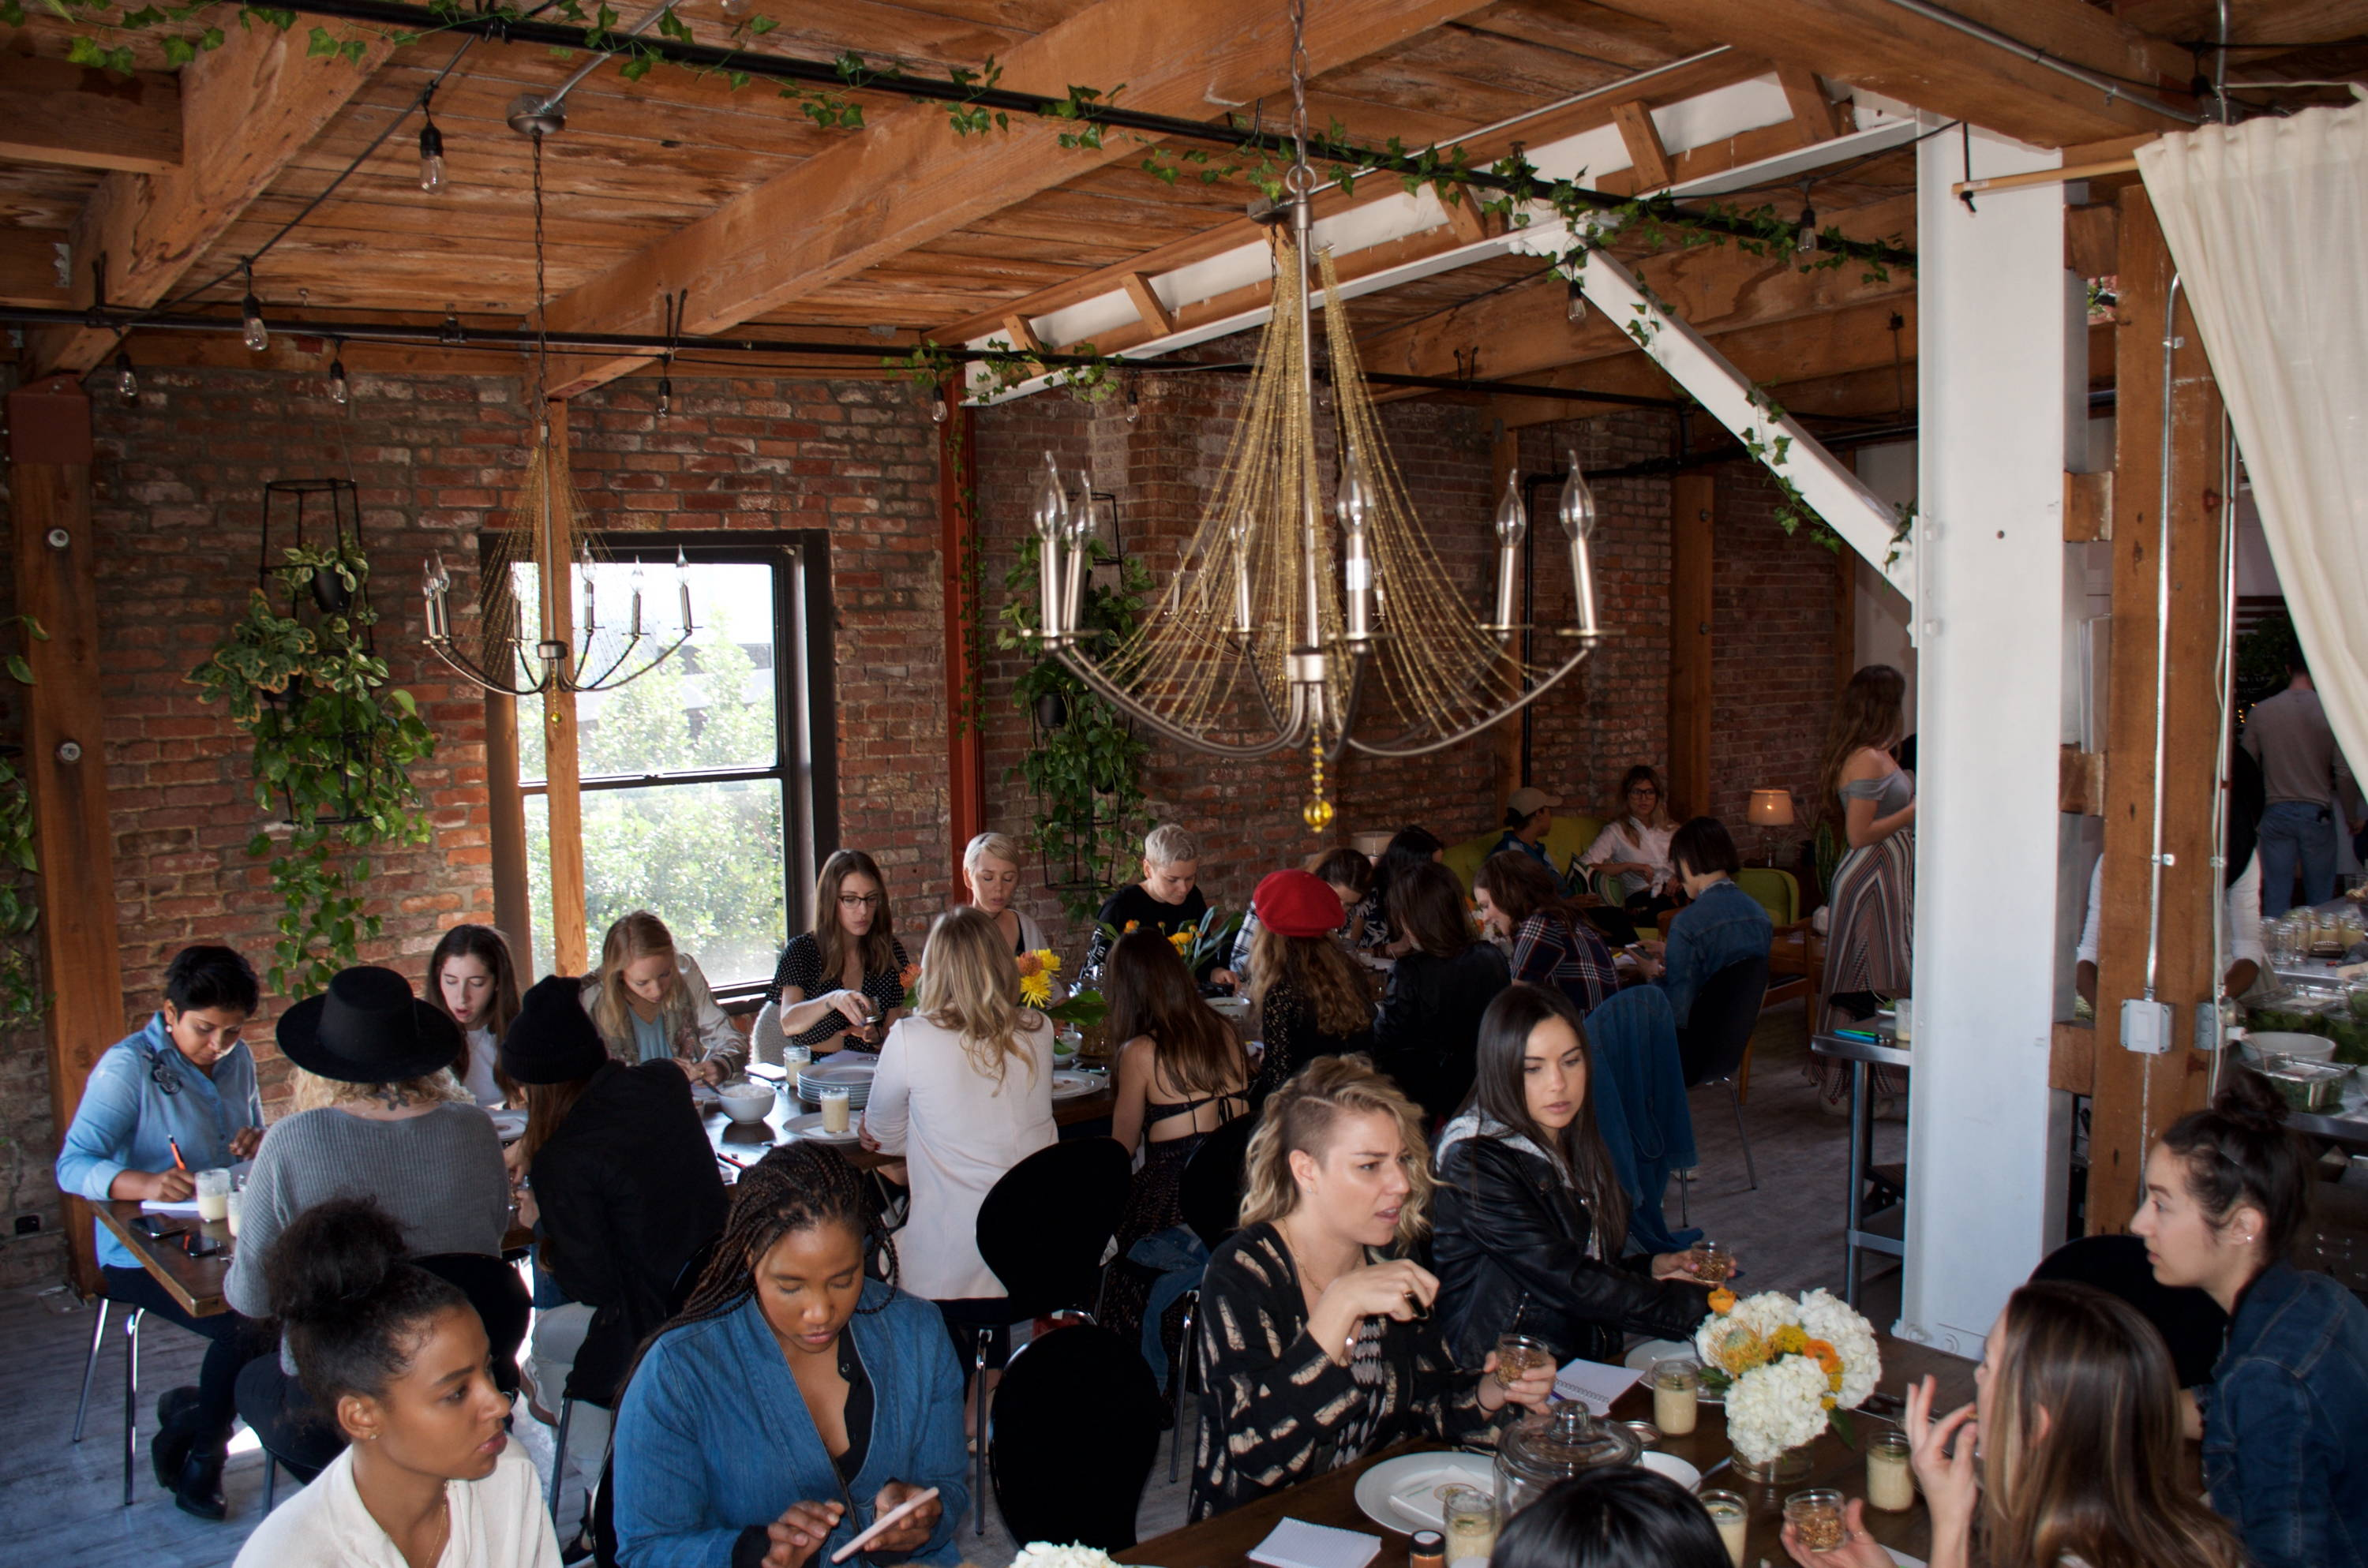 Foodie masterminds and entrepreneurs gather for a vegan brunch